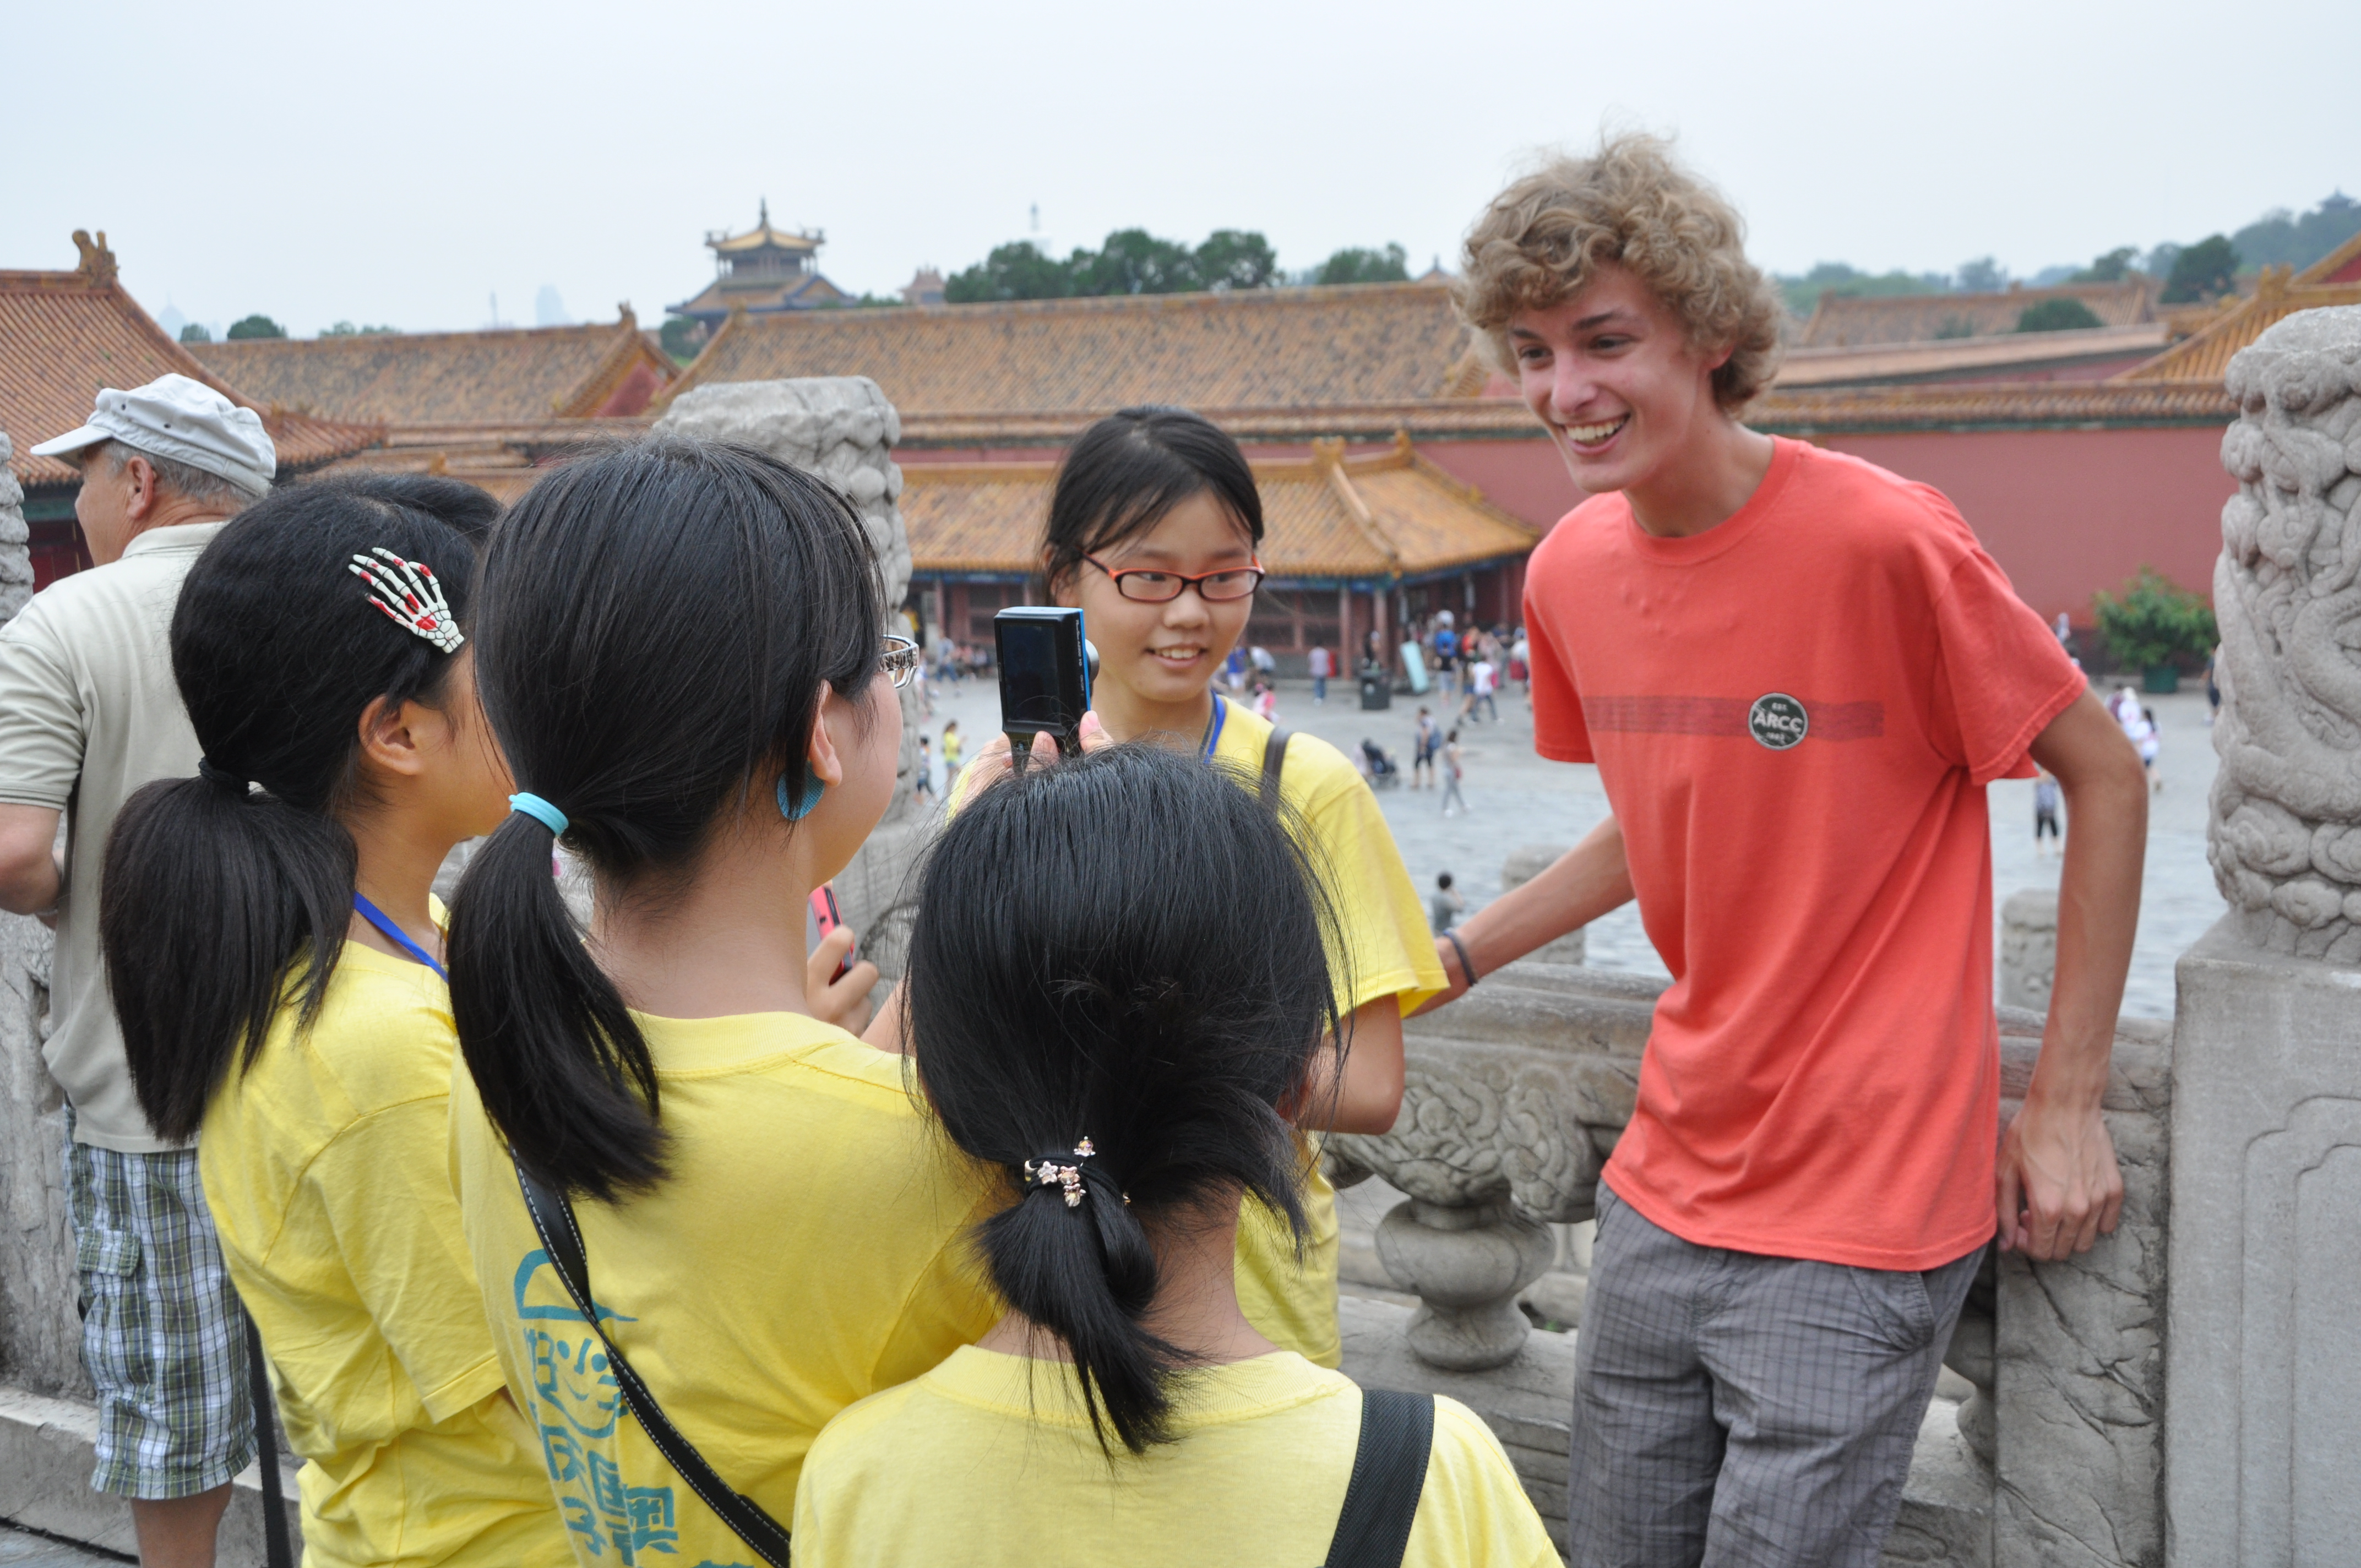 Summer Program - Travel And Tourism | Putney Student Travel: Innovative Summer Programs